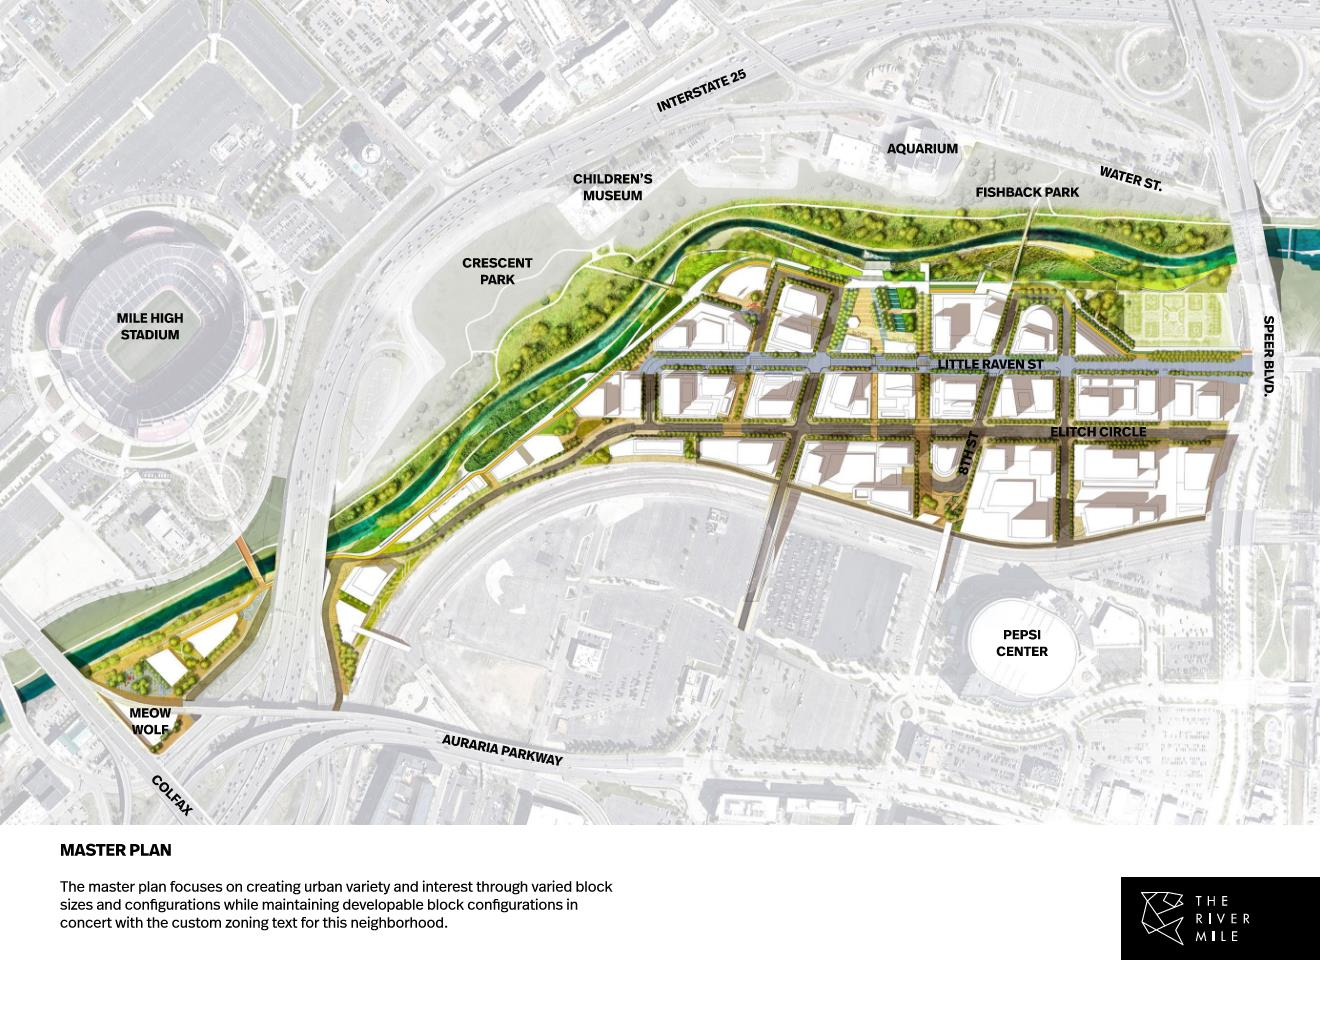 The River Mile Master Plan